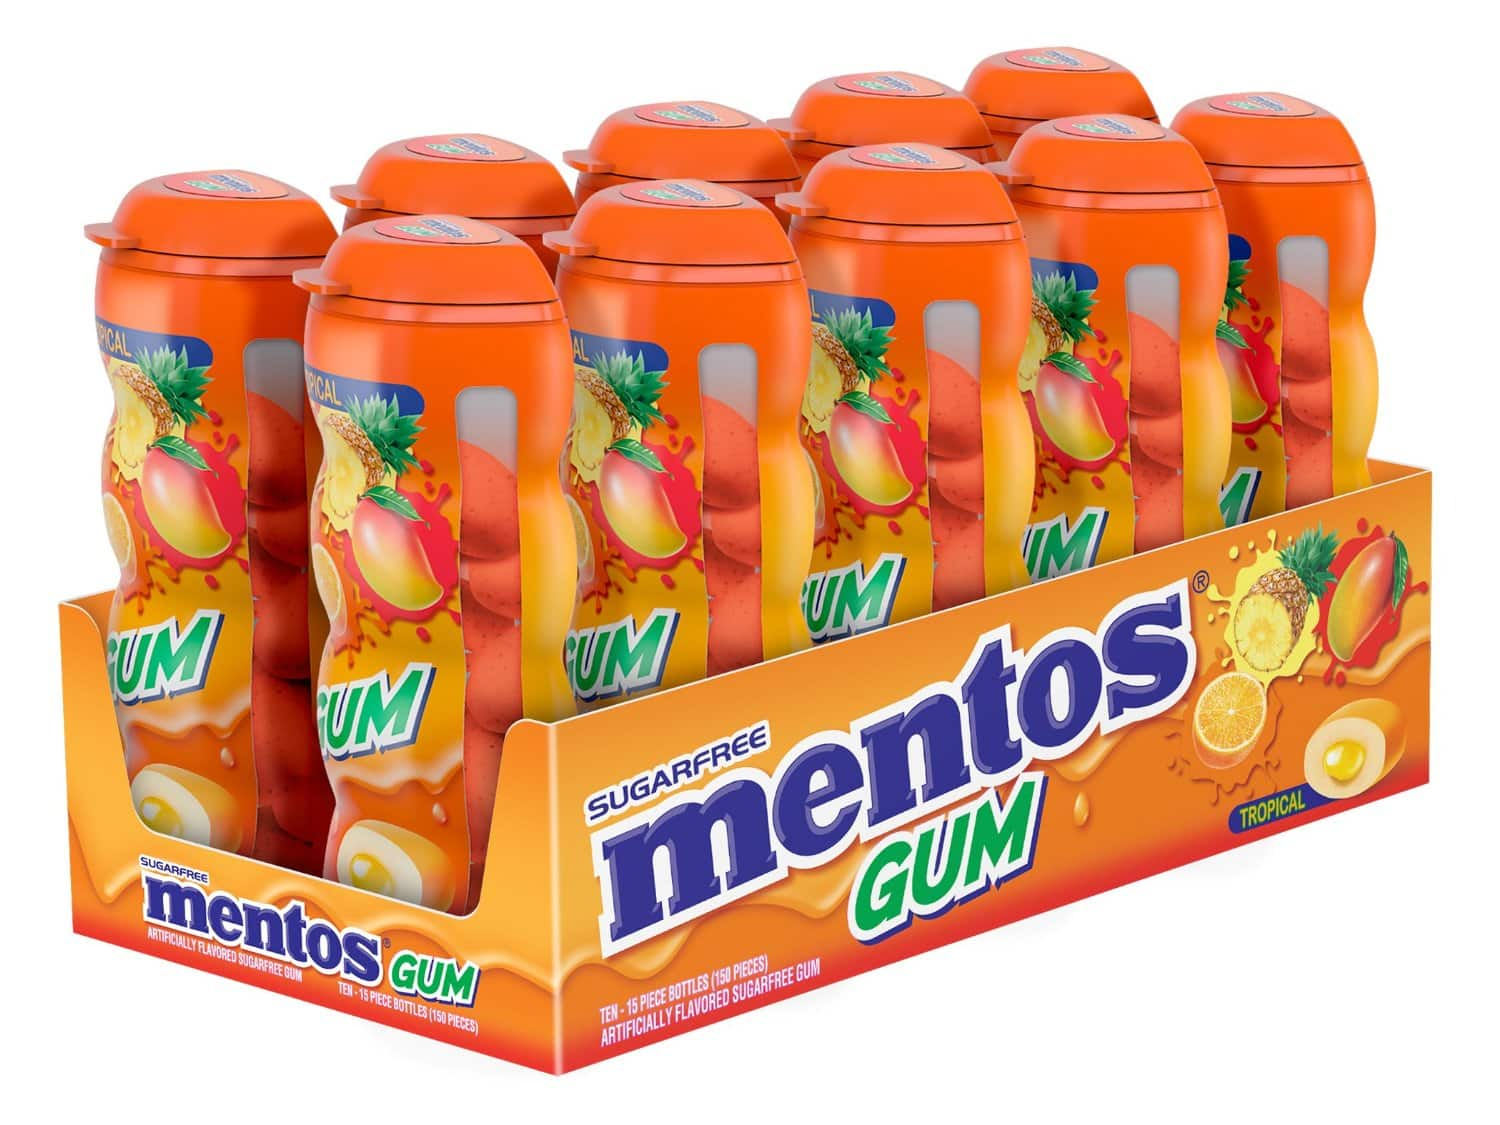 Mentos Gum Pocket Bottle, Tropical, 1.06 Ounce (Pack of 10)  $7.68 - $6.53 Shipped Prime Amazon